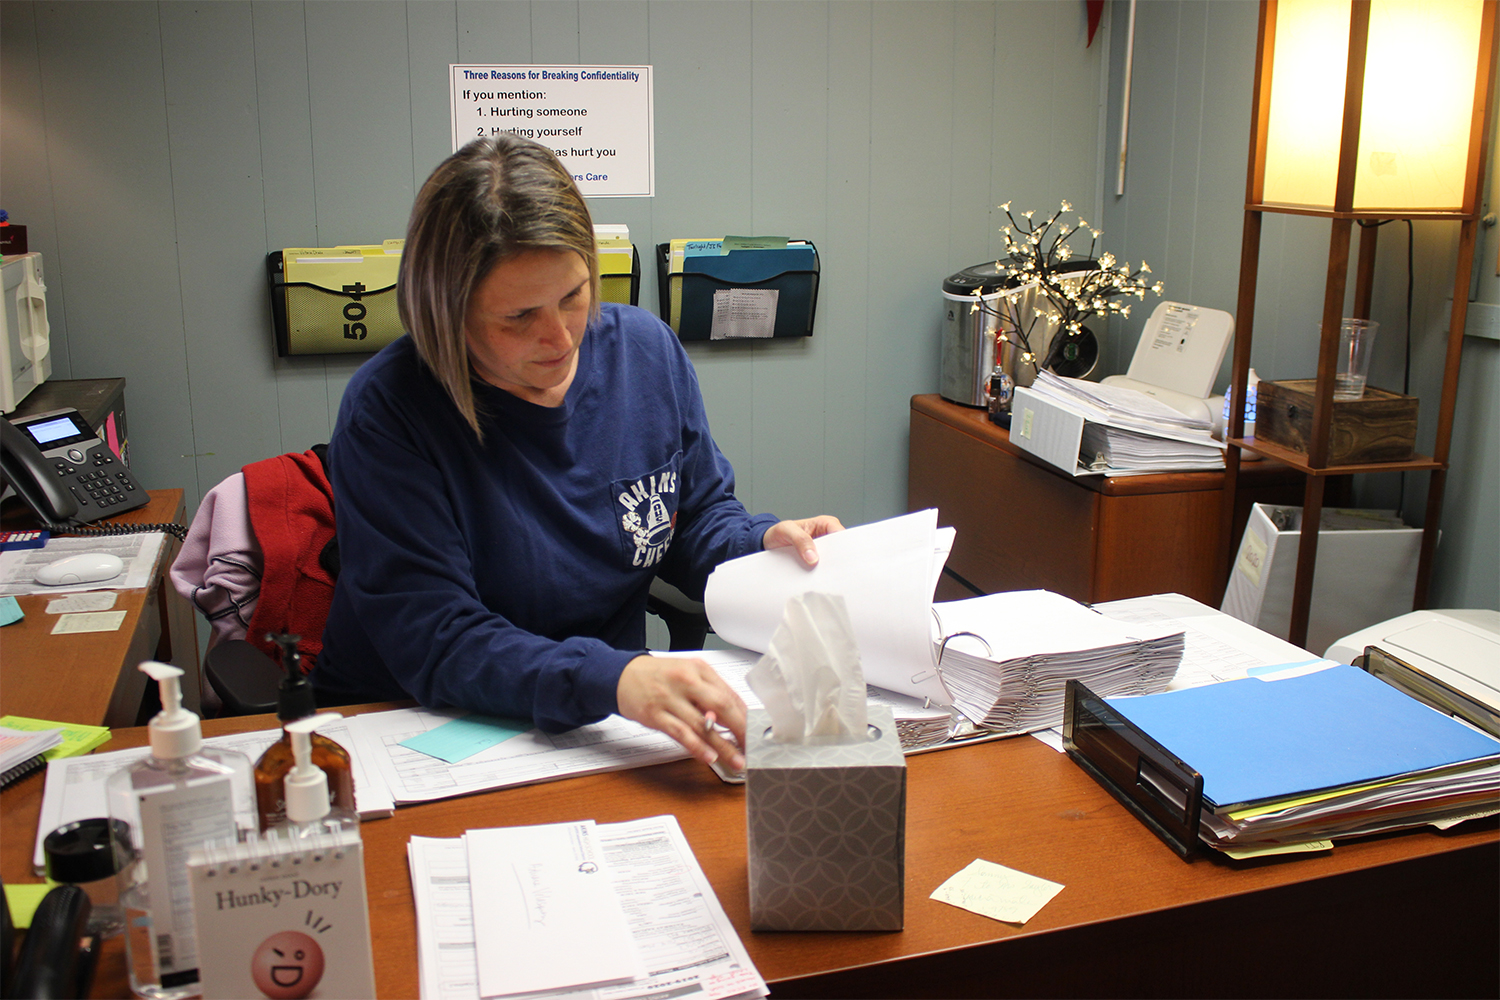 Jacey Saylor-Carroll, counselor for the Social Services Academy, reviews paperwork she uses to keep track of student progress. All Akins counselors struggle with caseloads above the ratios recommended by the American School Counselor Association.